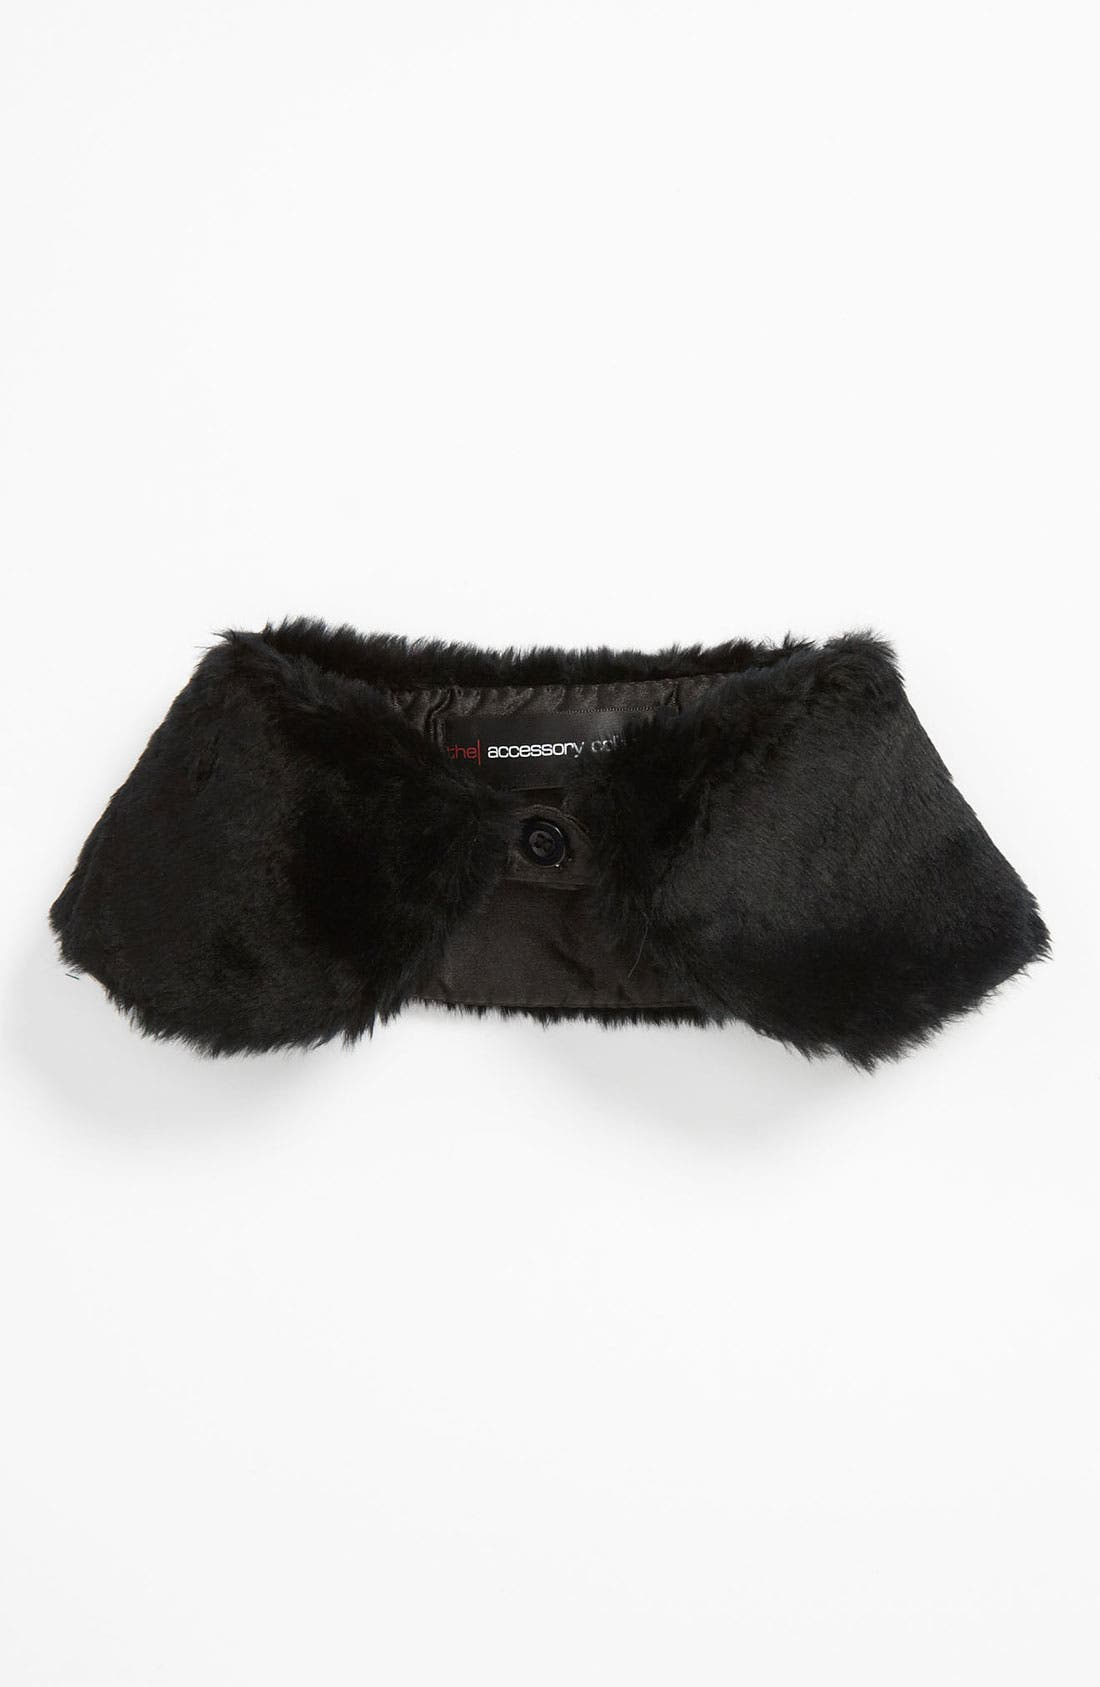 Alternate Image 1 Selected - The Accessory Collection Faux Fur Collar (Girls)